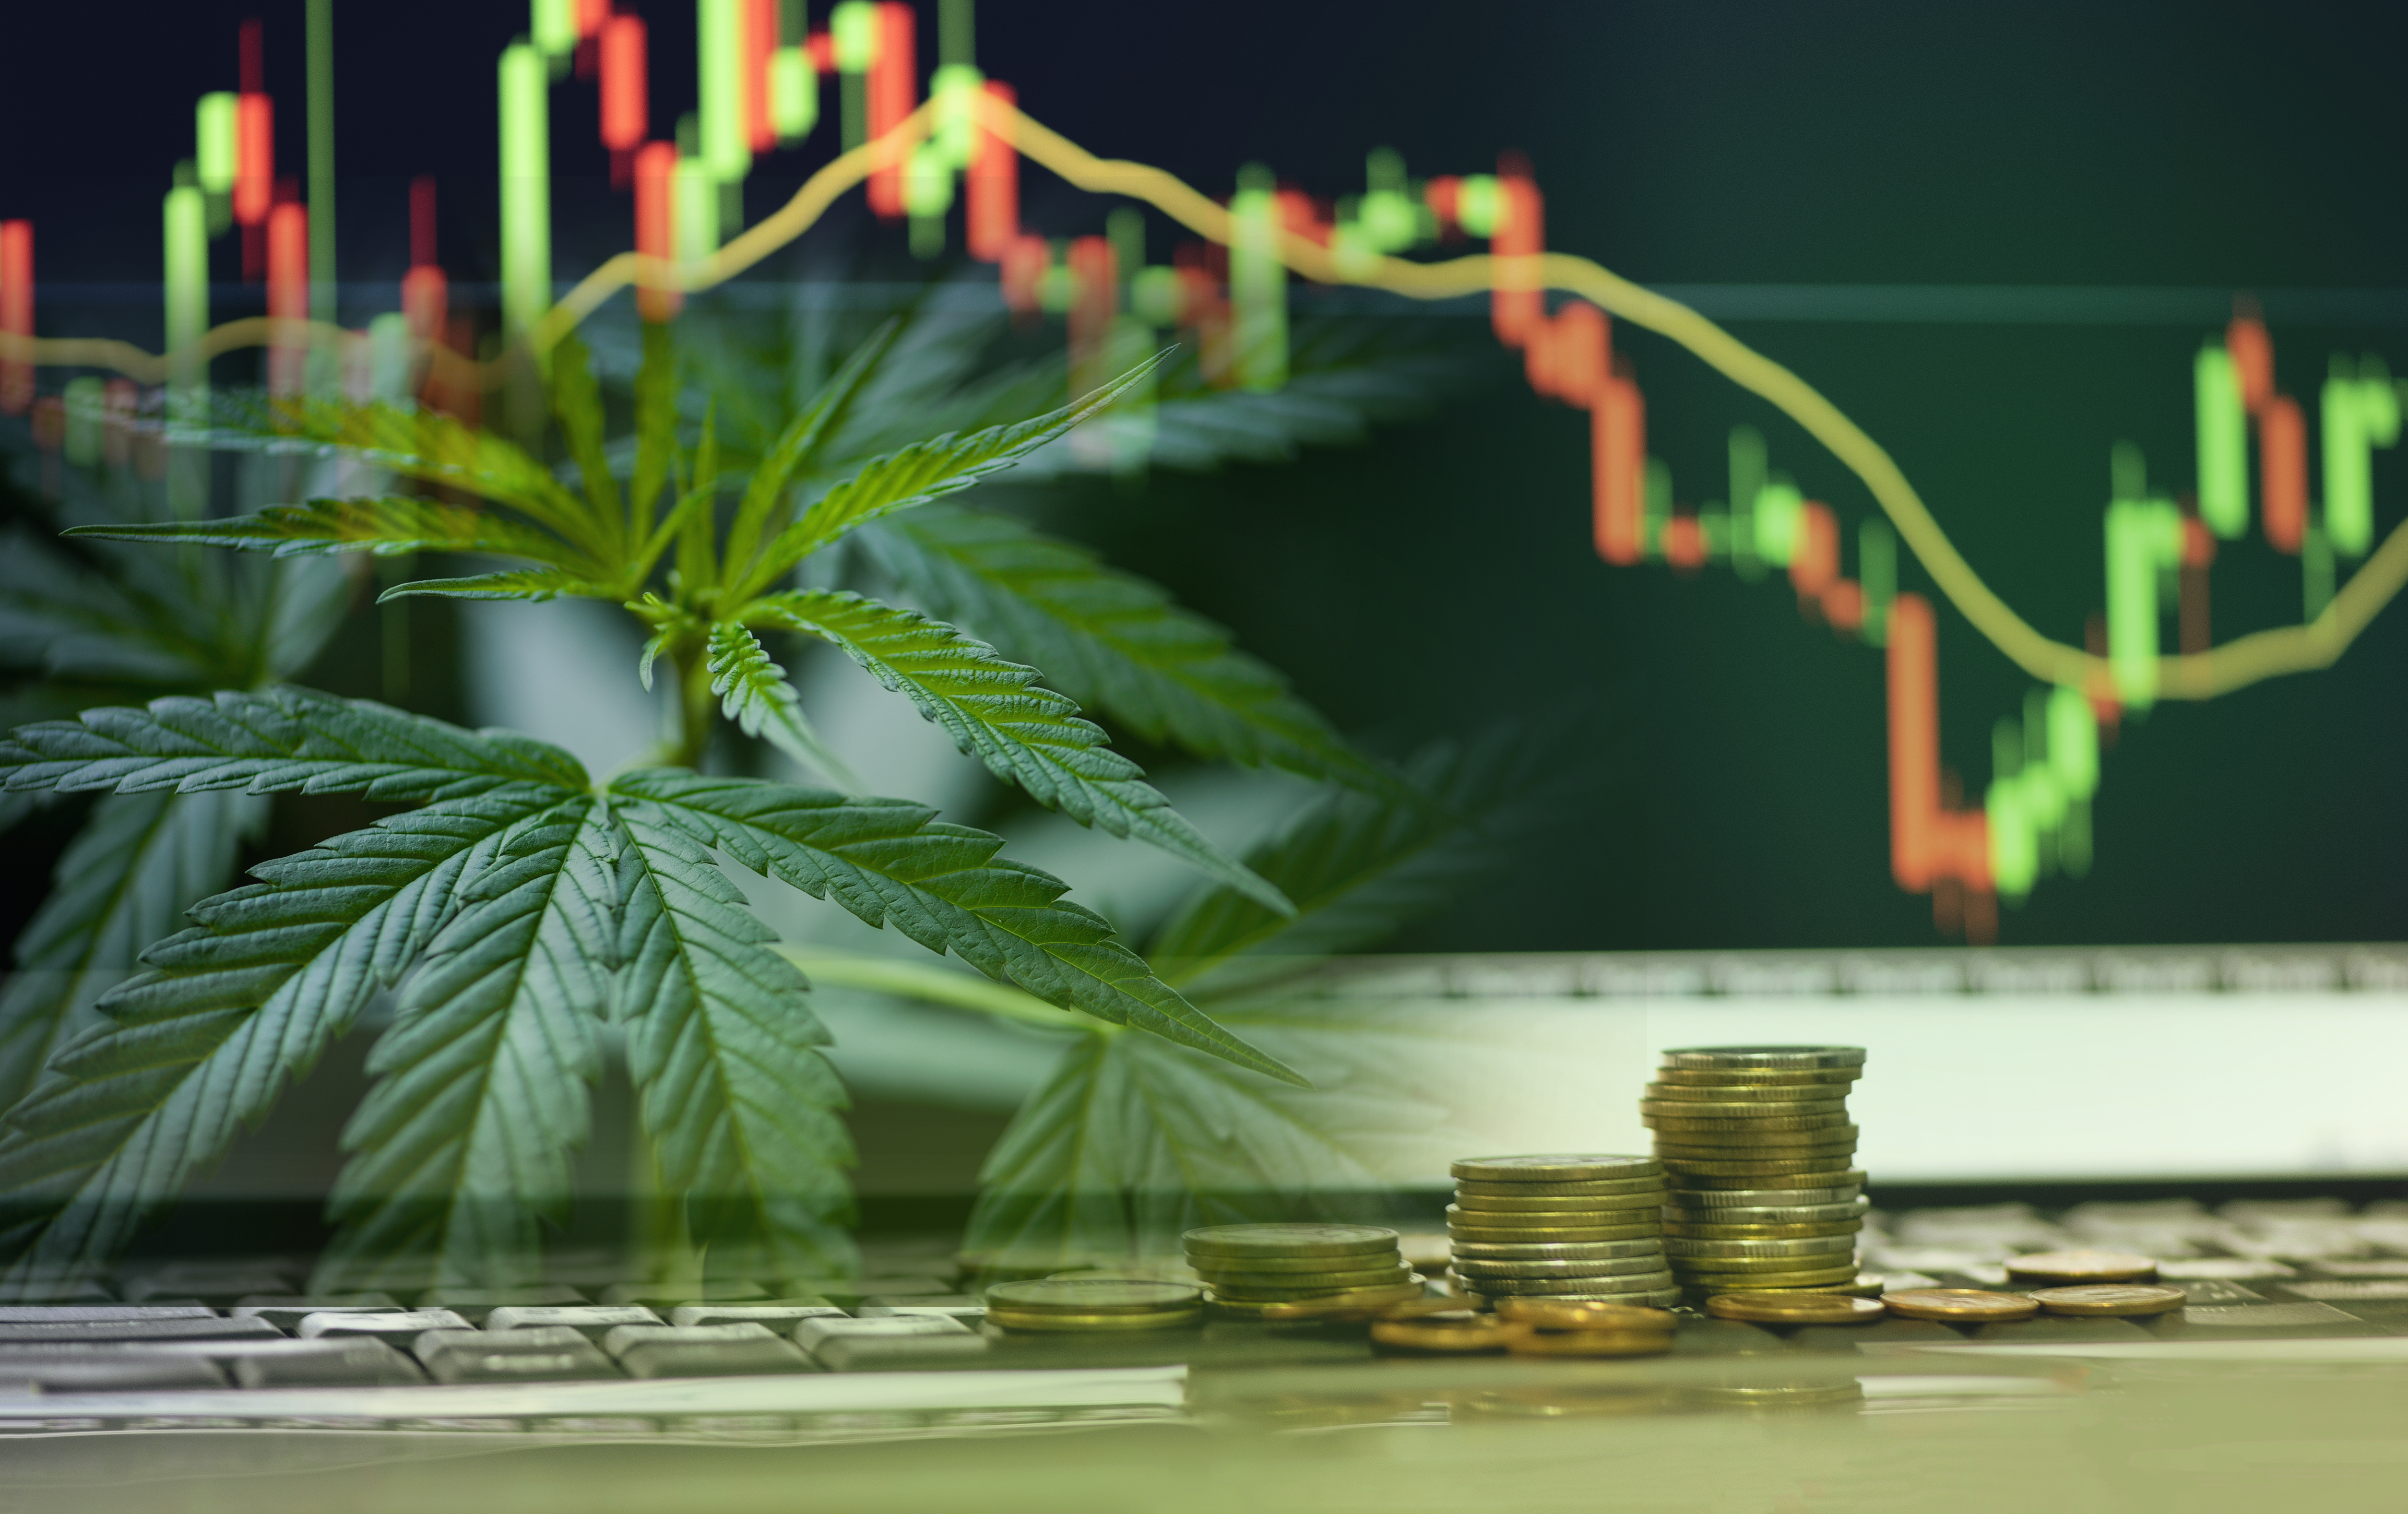 How to trade Cannabis shares CFDs